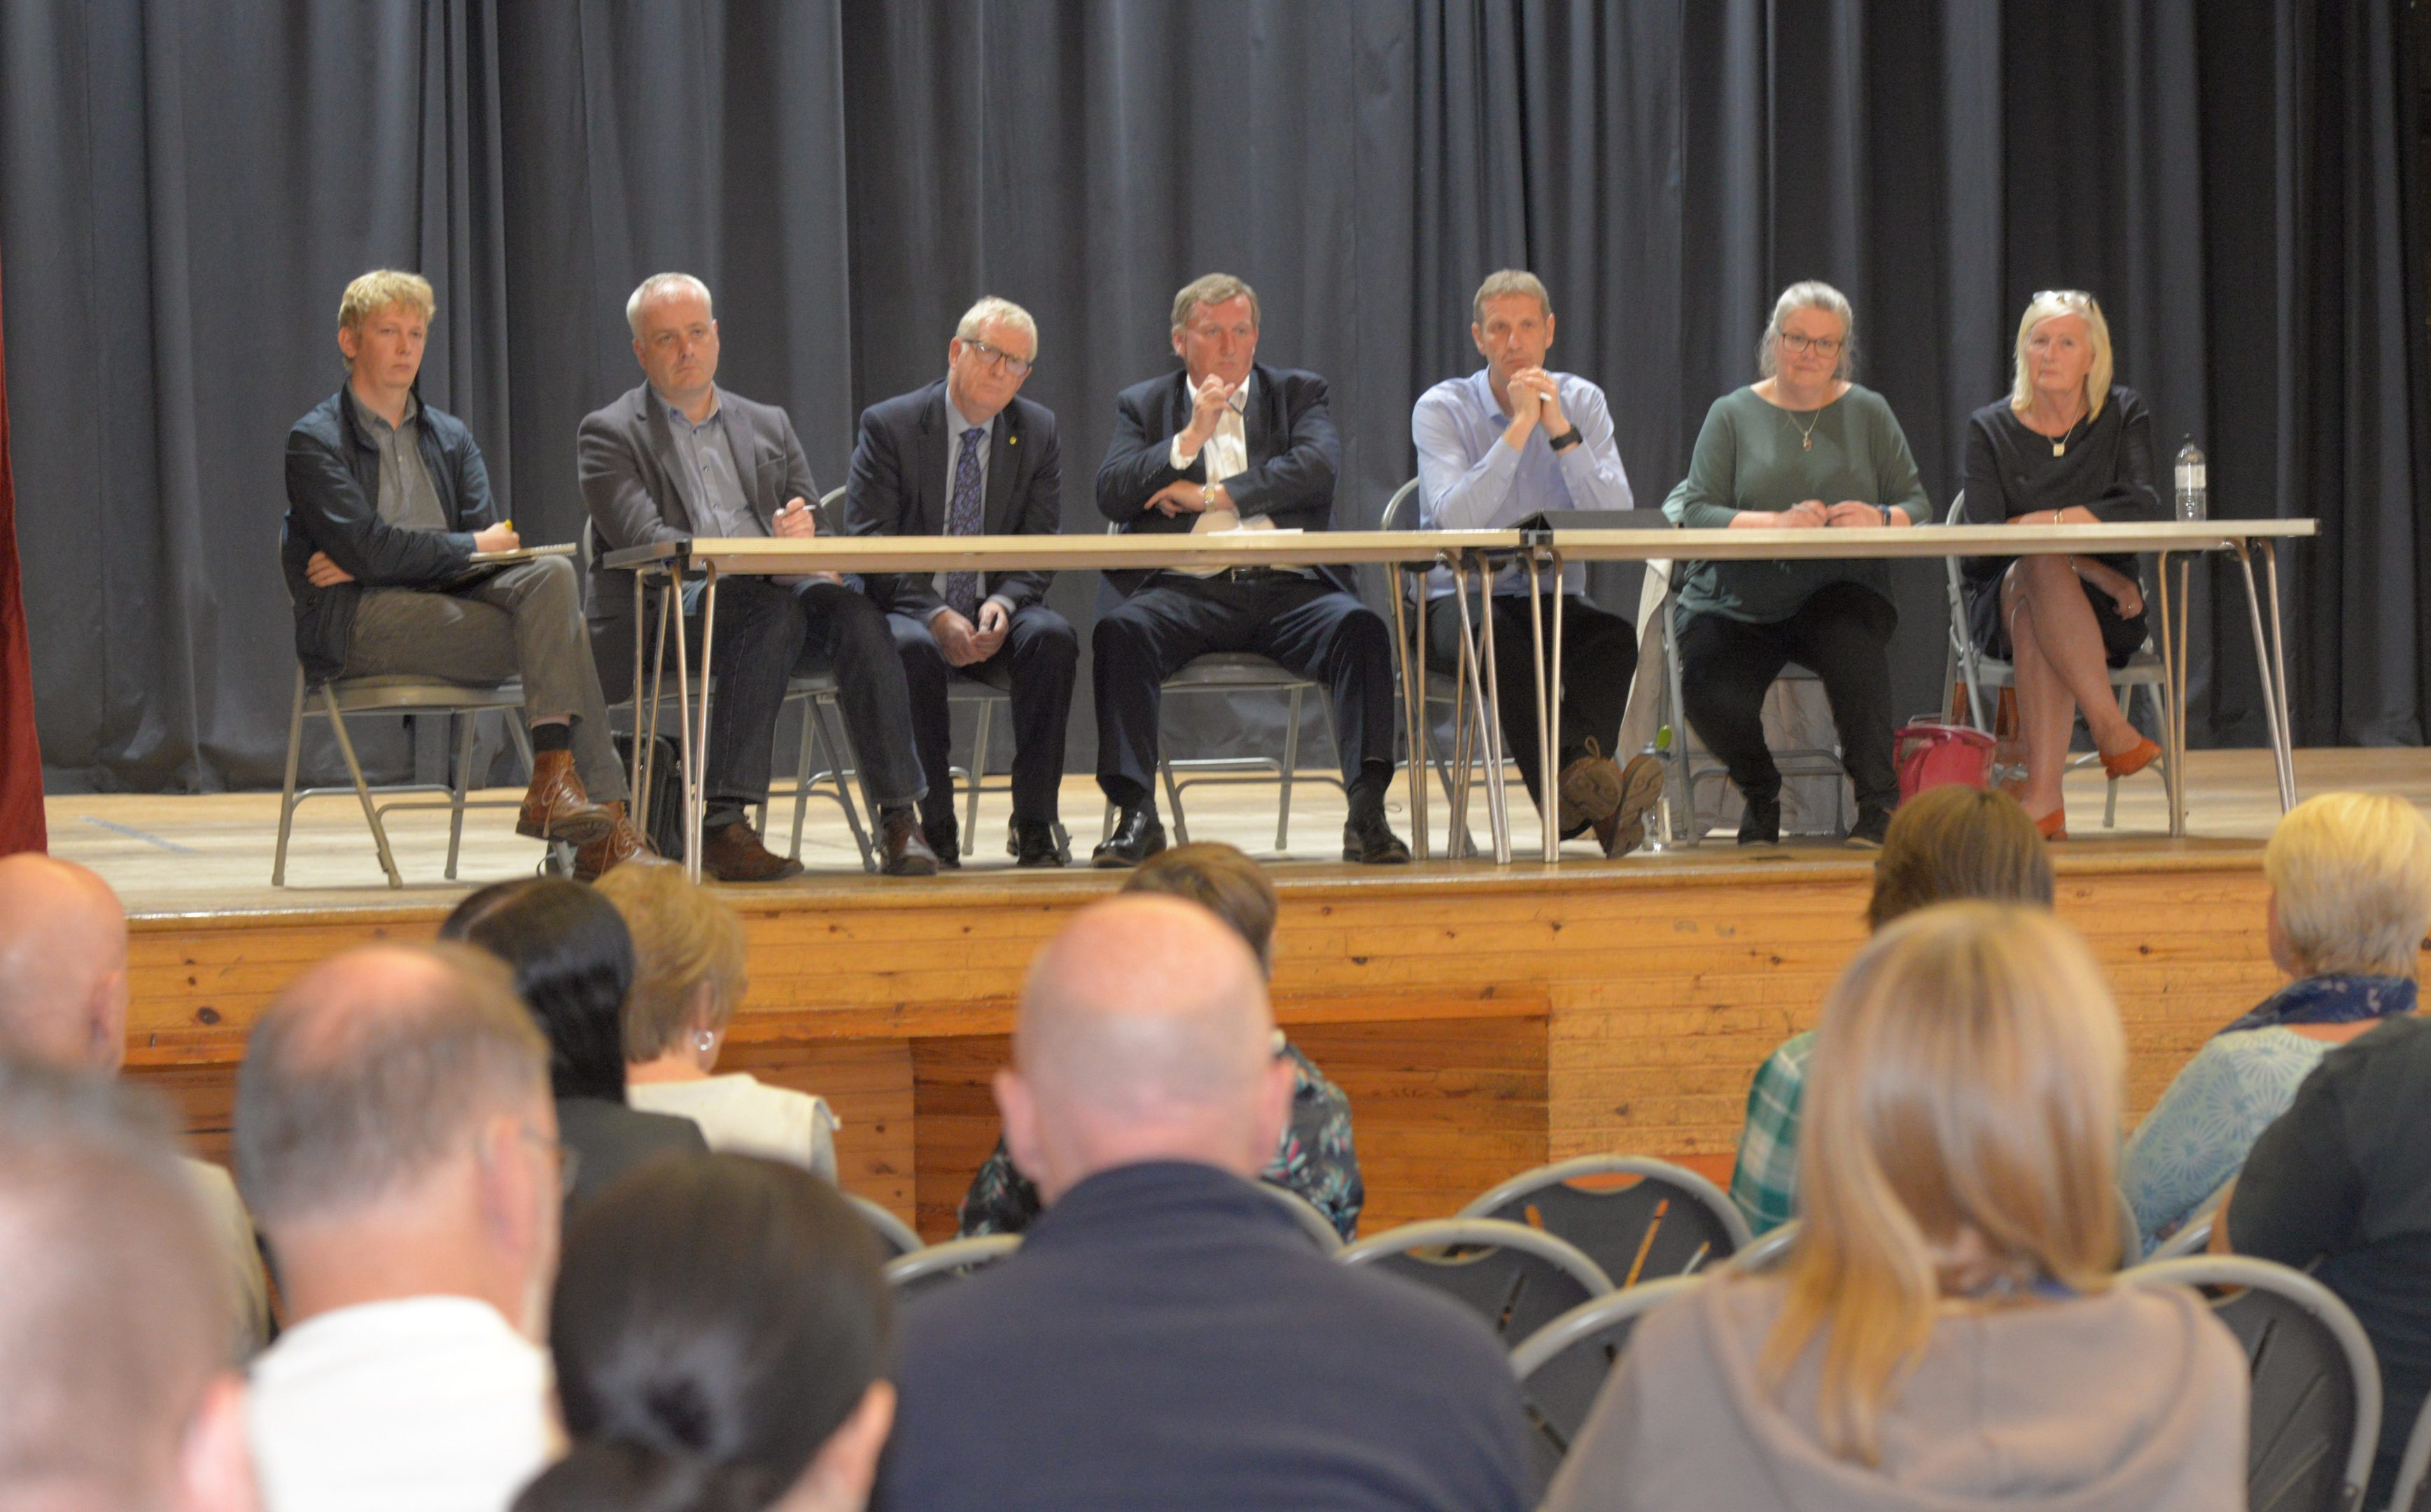 The panel facing the public at the meeting in Inverkeithing High School.